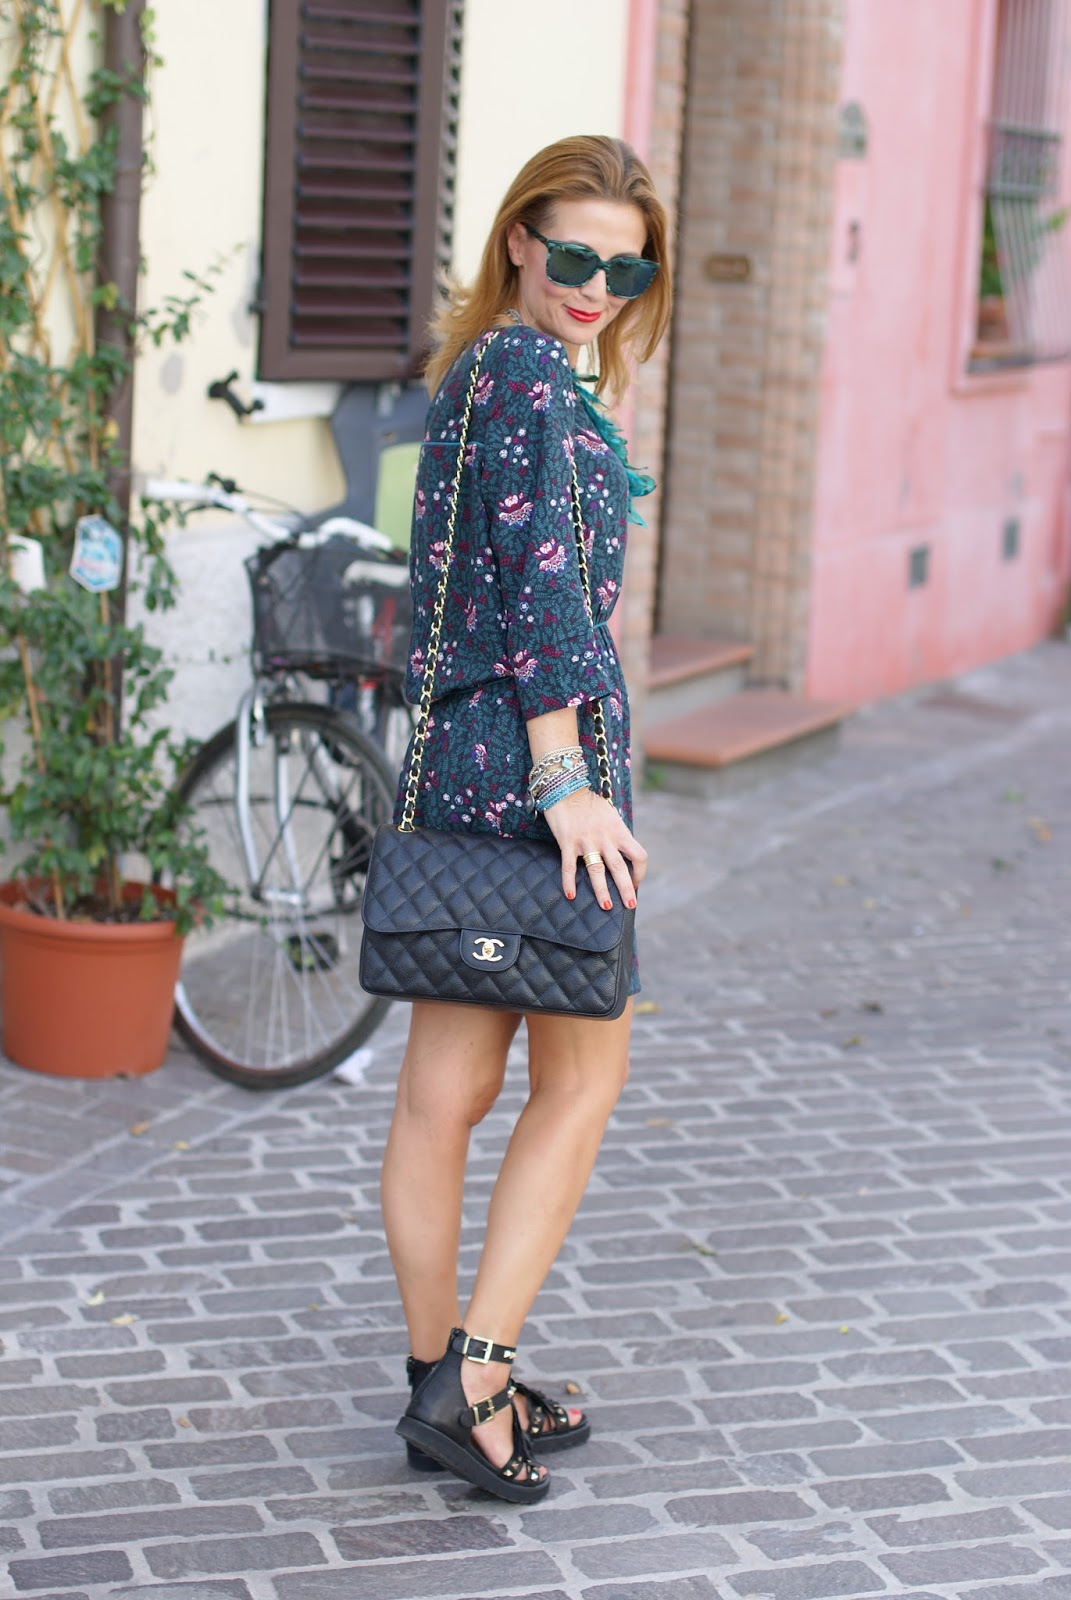 Paramita Magnolia dress and Chanel 2.55 bag on Fashion and Cookies fashion blog, fashion blogger style !